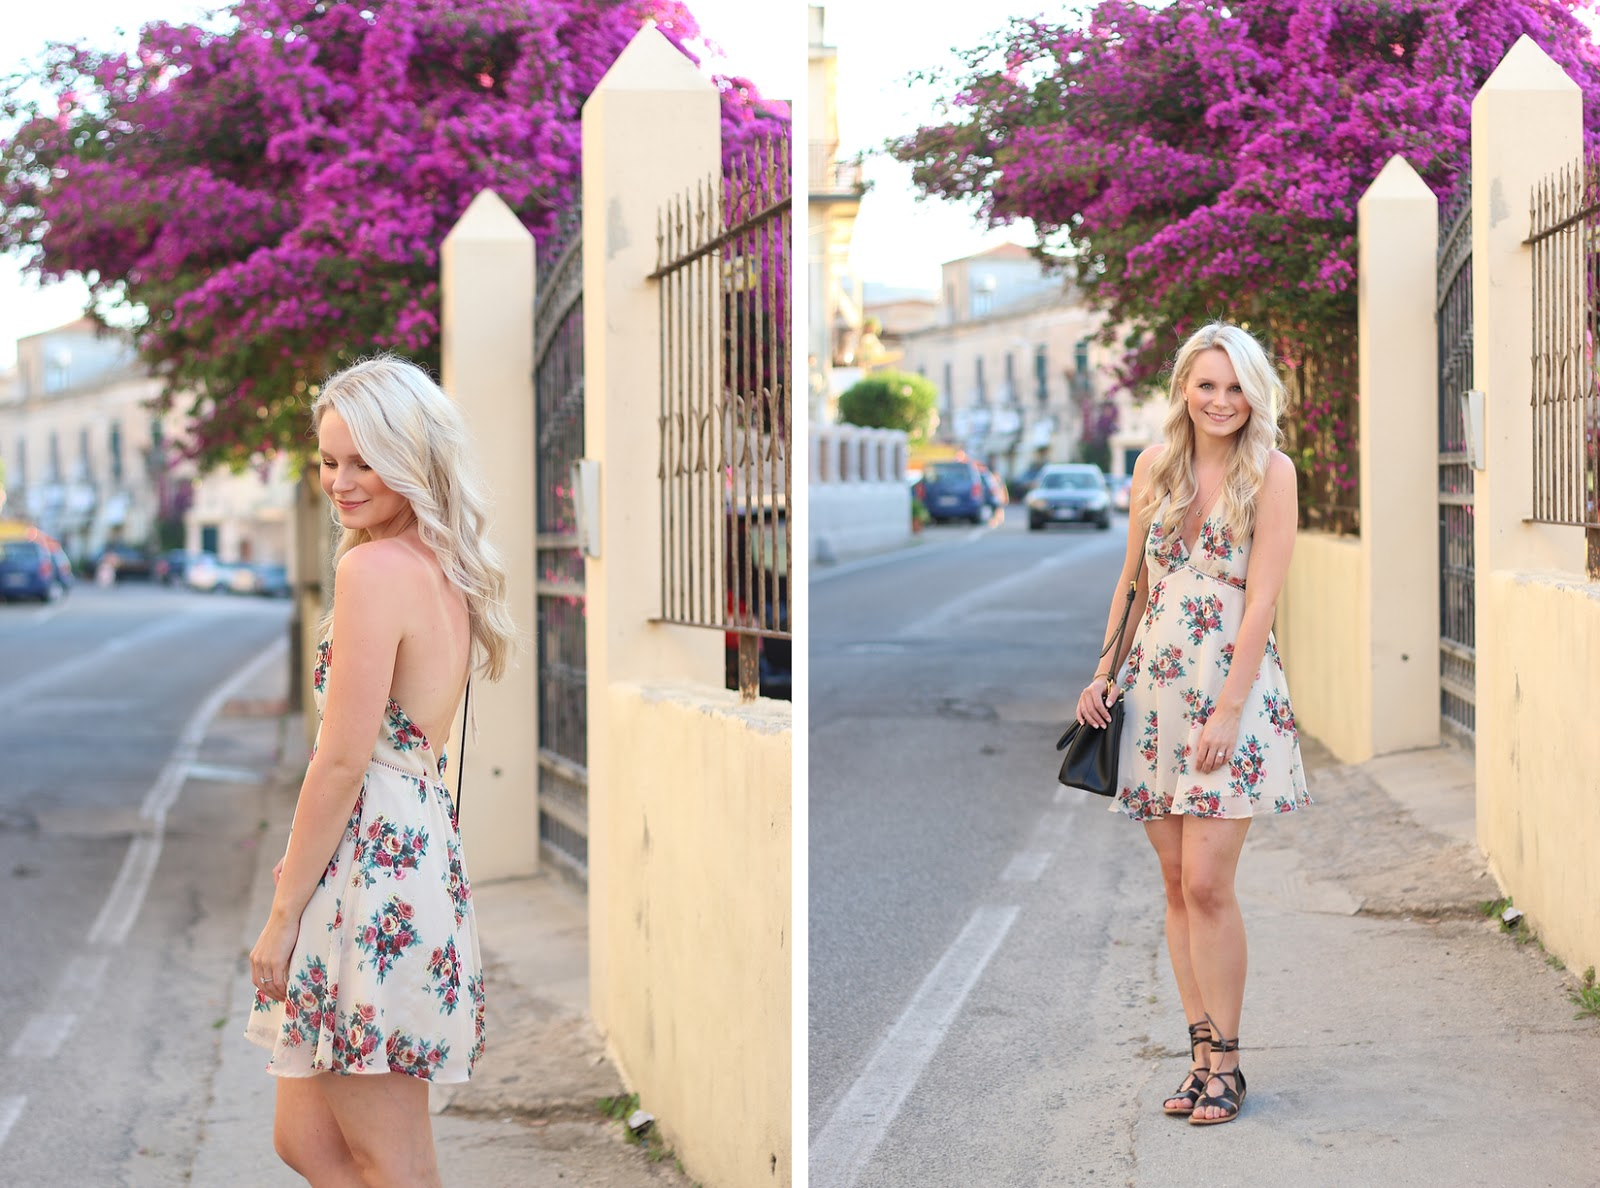 a blonde girl stands in front of purple flowers, wearing a floral dress in italy